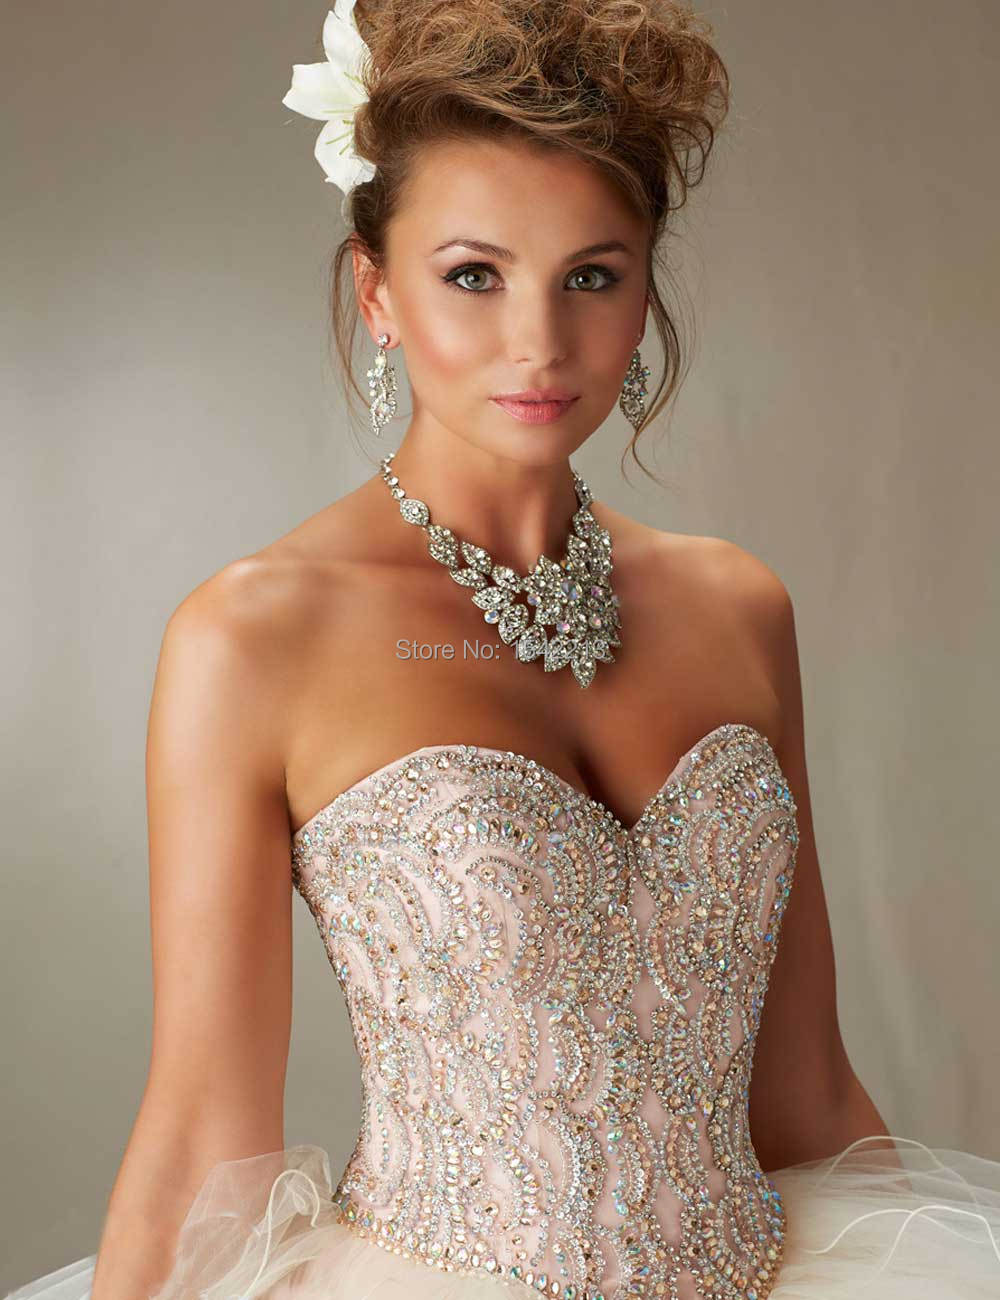 d5fae71f426 Coral Light Blue Sweetheart Beaded Ball Gown Quinceanera Dress WIth Removable  Strap Girls Sweet 16 Prom Gowns 2017-in Quinceanera Dresses from Weddings  ...